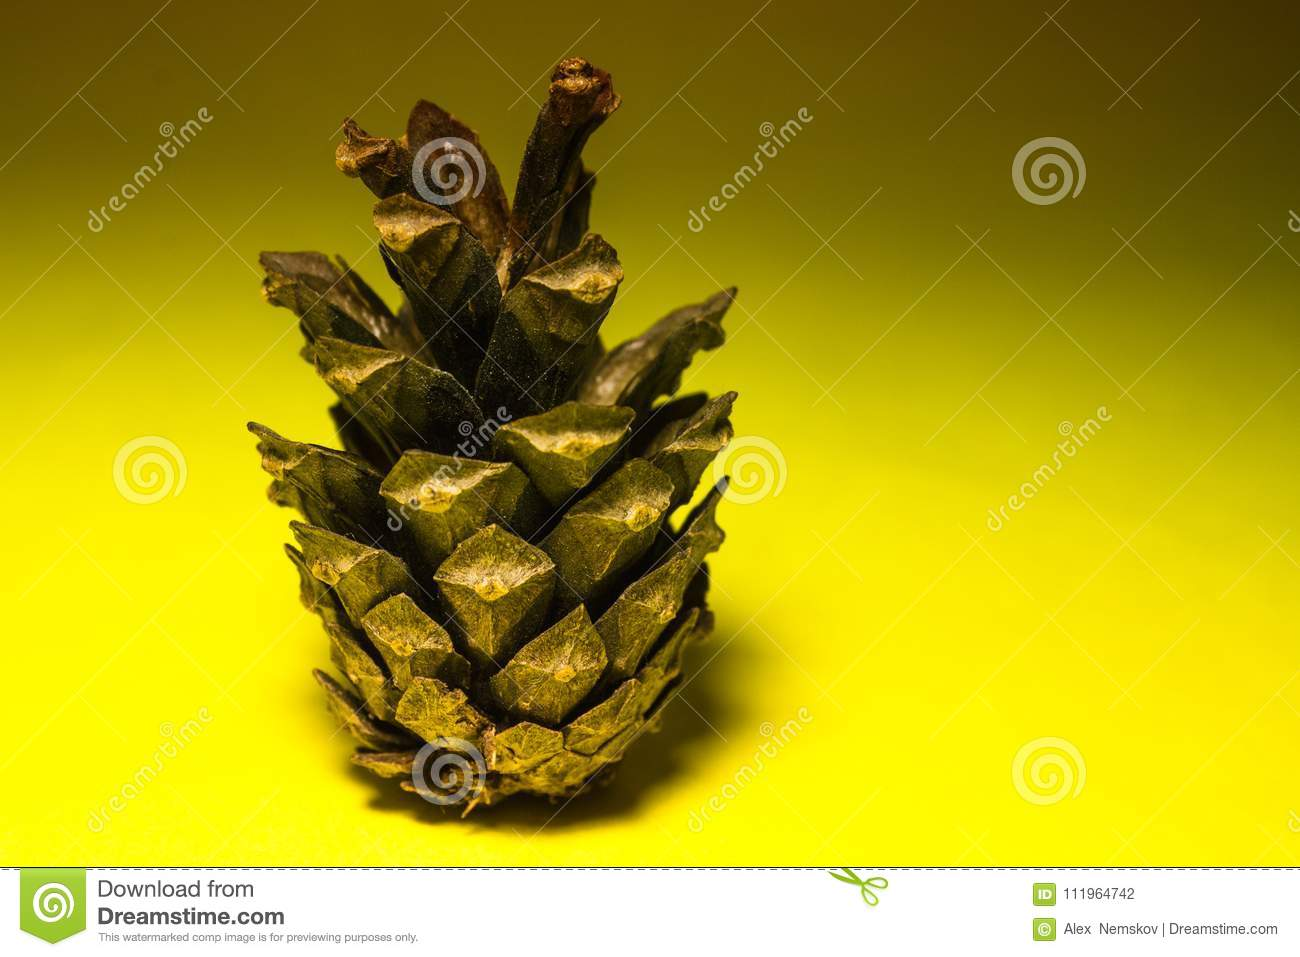 Pine cone on a yellow background